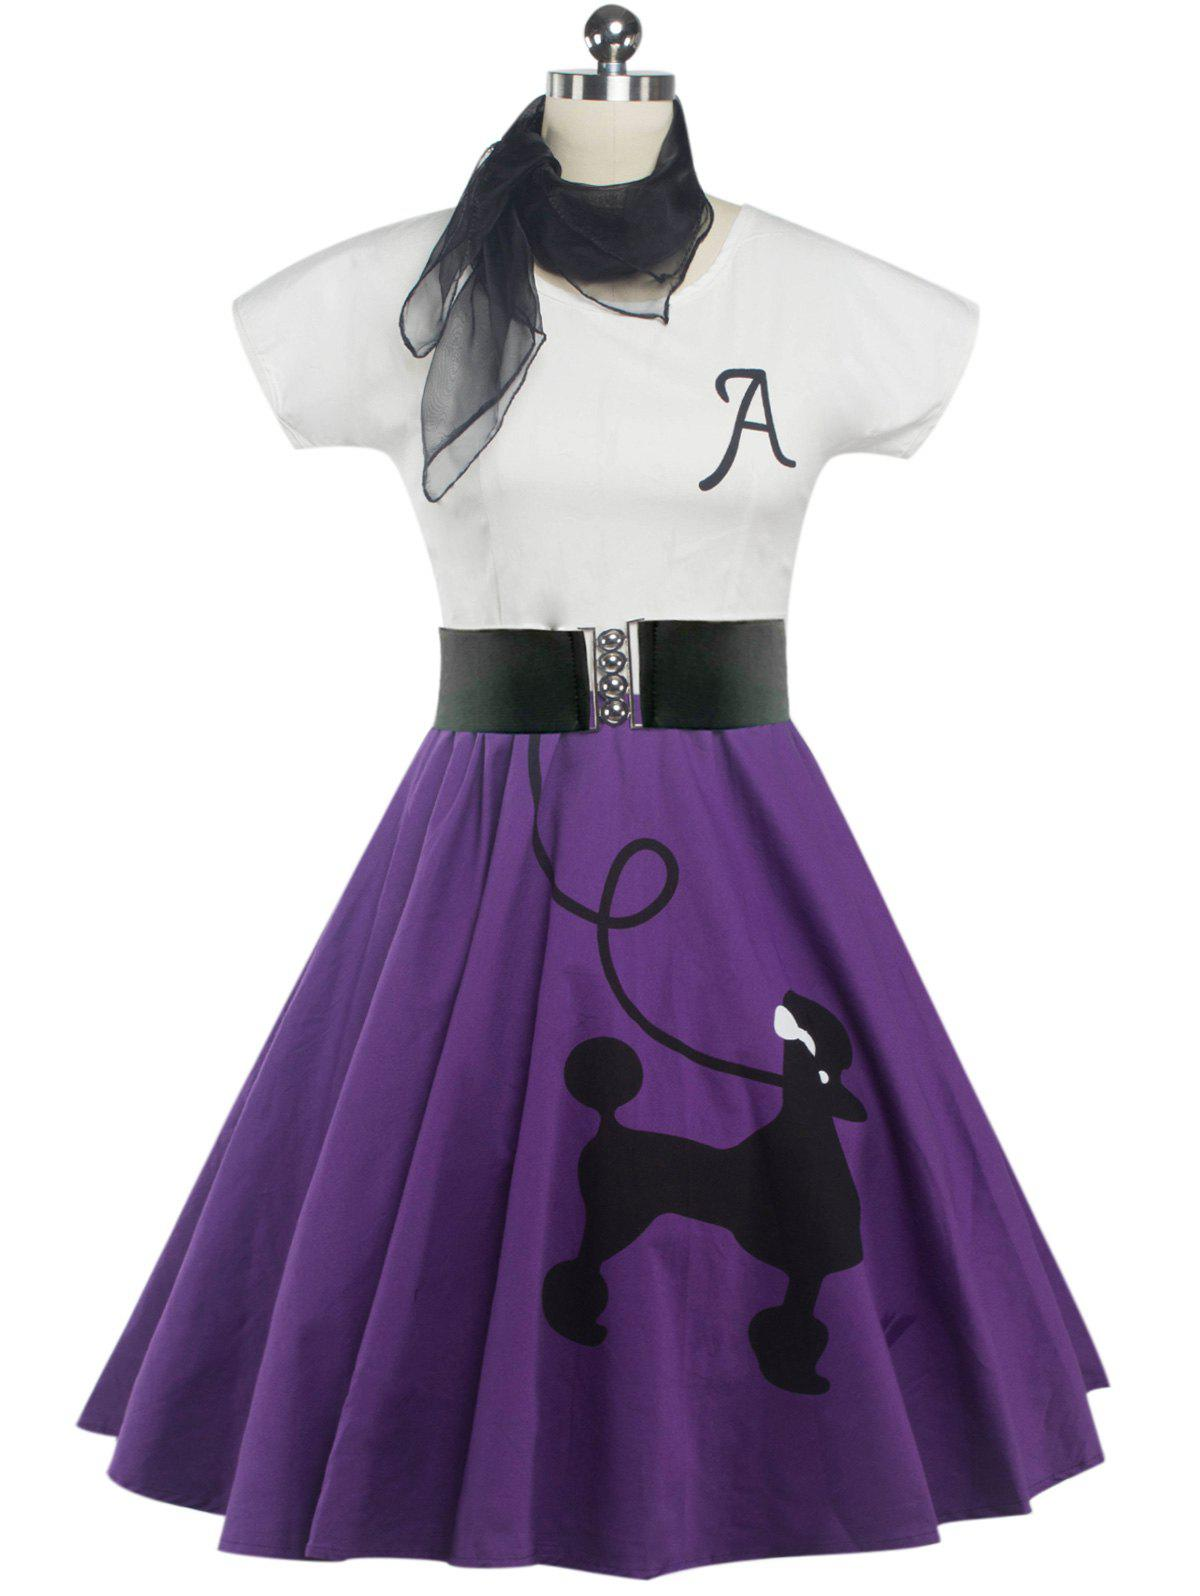 Retro Poodle Print High Waist Skater Dress - PURPLE L